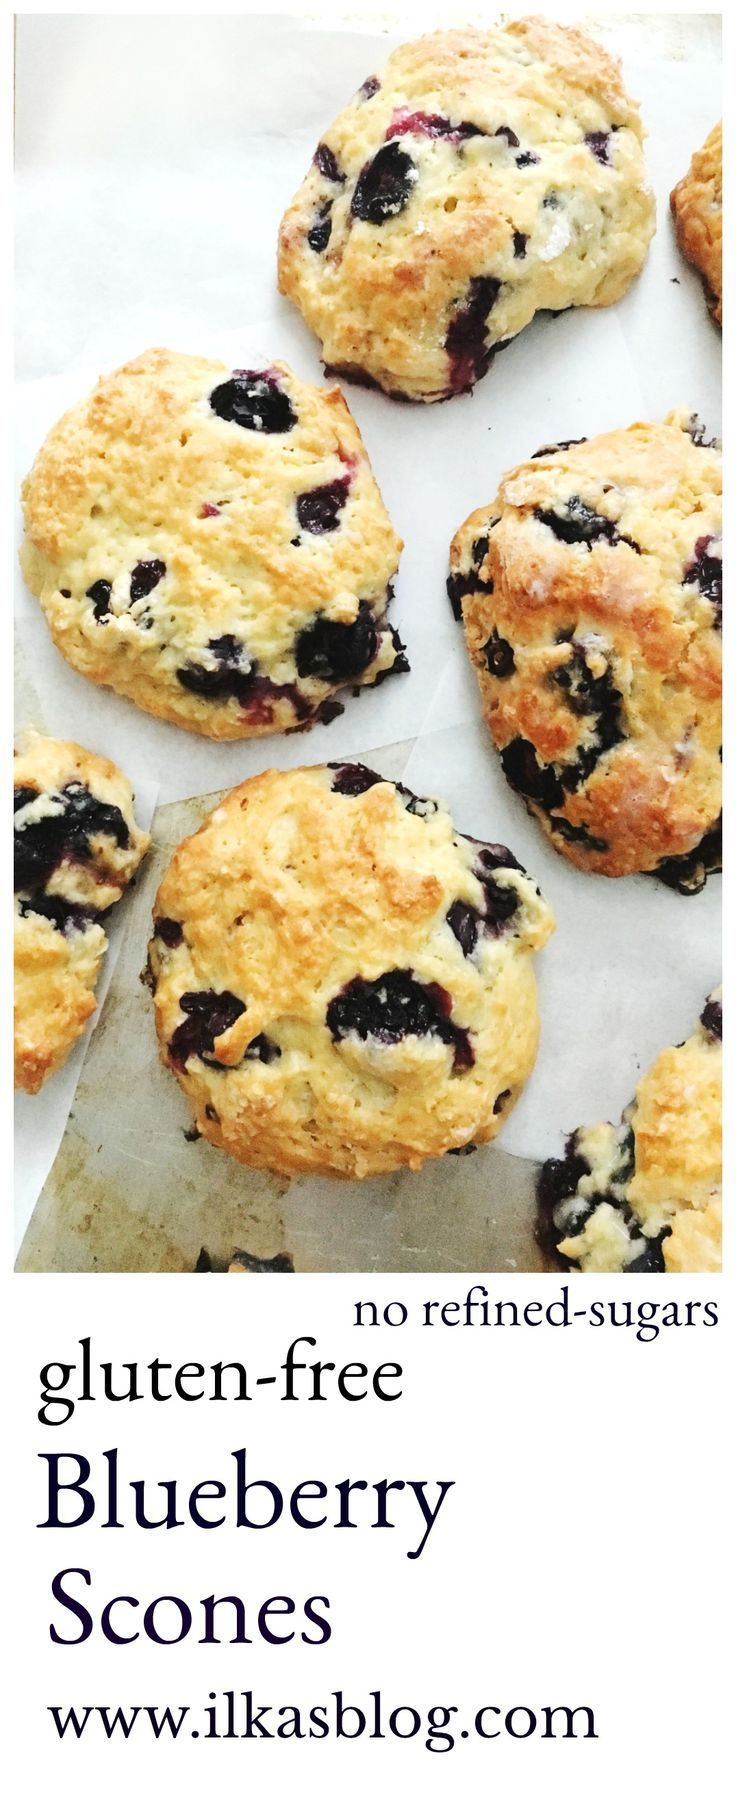 Gluten-free scones. Made with no refined sugars! Perfect for Sunday Brunch!